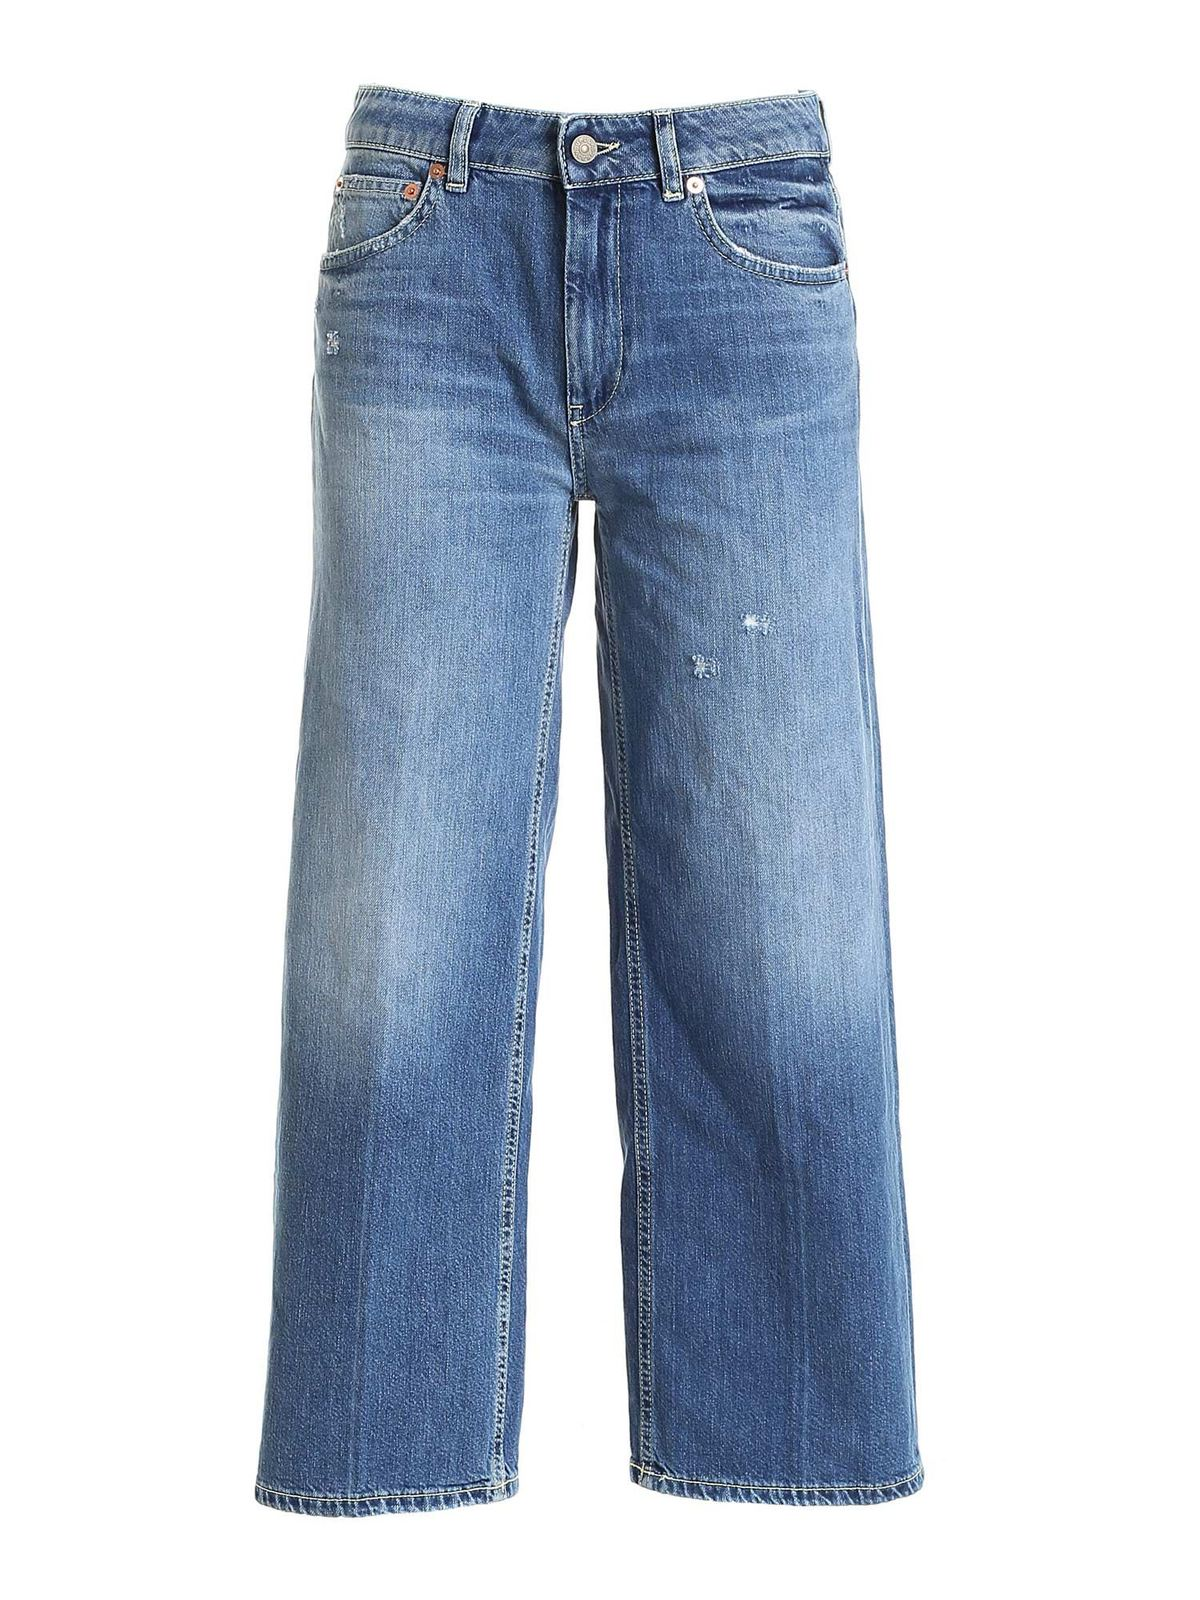 Dondup AVENUE JEANS IN FADED BLUE